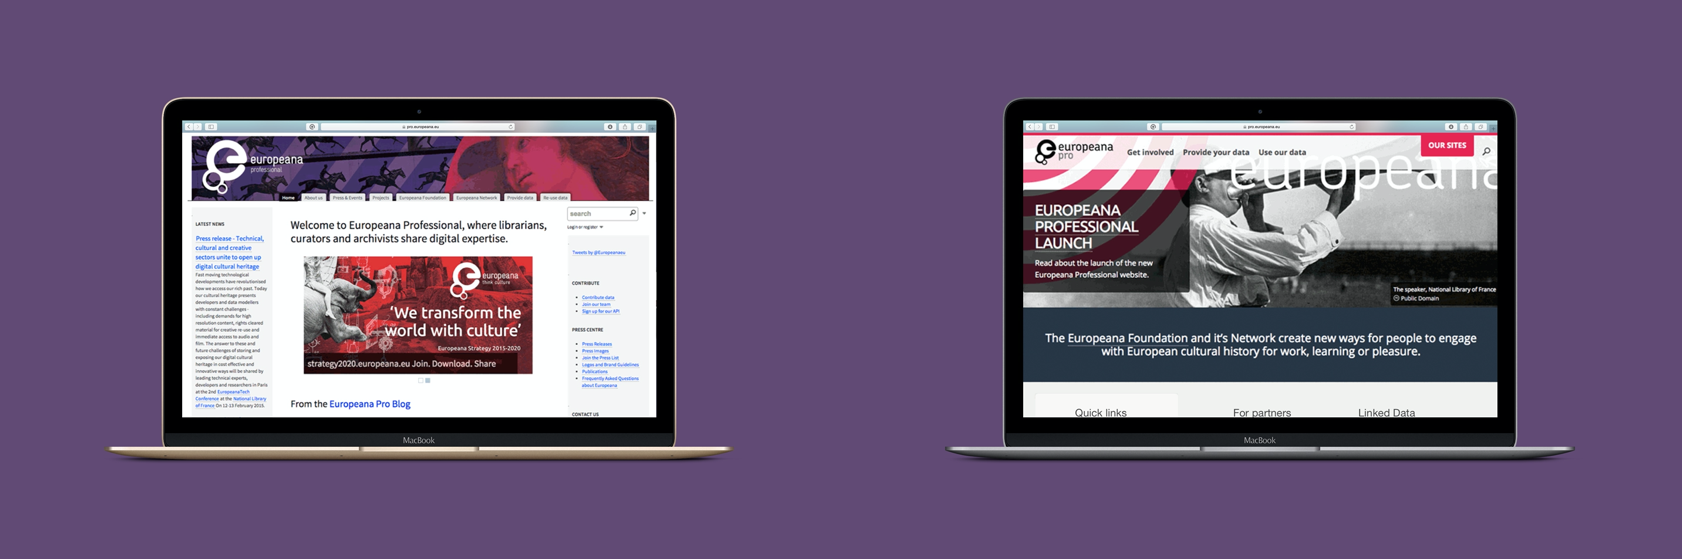 A comparison screenshot, showing the Europeana Professional website before and after the redesign.